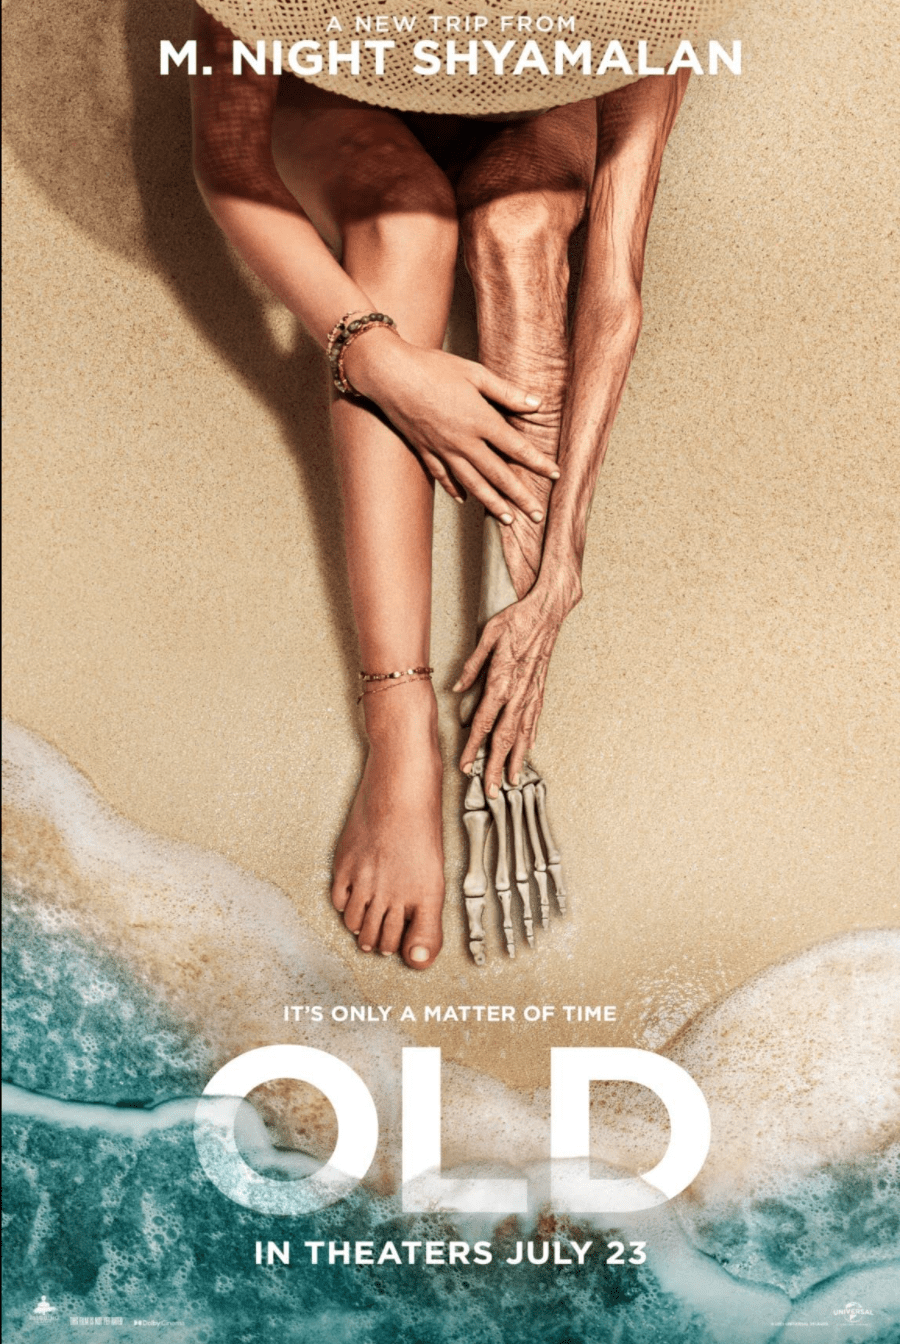 """The poster for """"Old"""" shows a woman sitting on a beach as her leg becomes just bone, a sign of her rapid aging. This kind of supernatural plot is typical for director Shyamalan, who rose to prominence with his 1999 hit, """"The Sixth Sense,"""" and is known for his film&squot;s plot twists and suspenseful tones. Photo Courtesy of Universal Studios"""